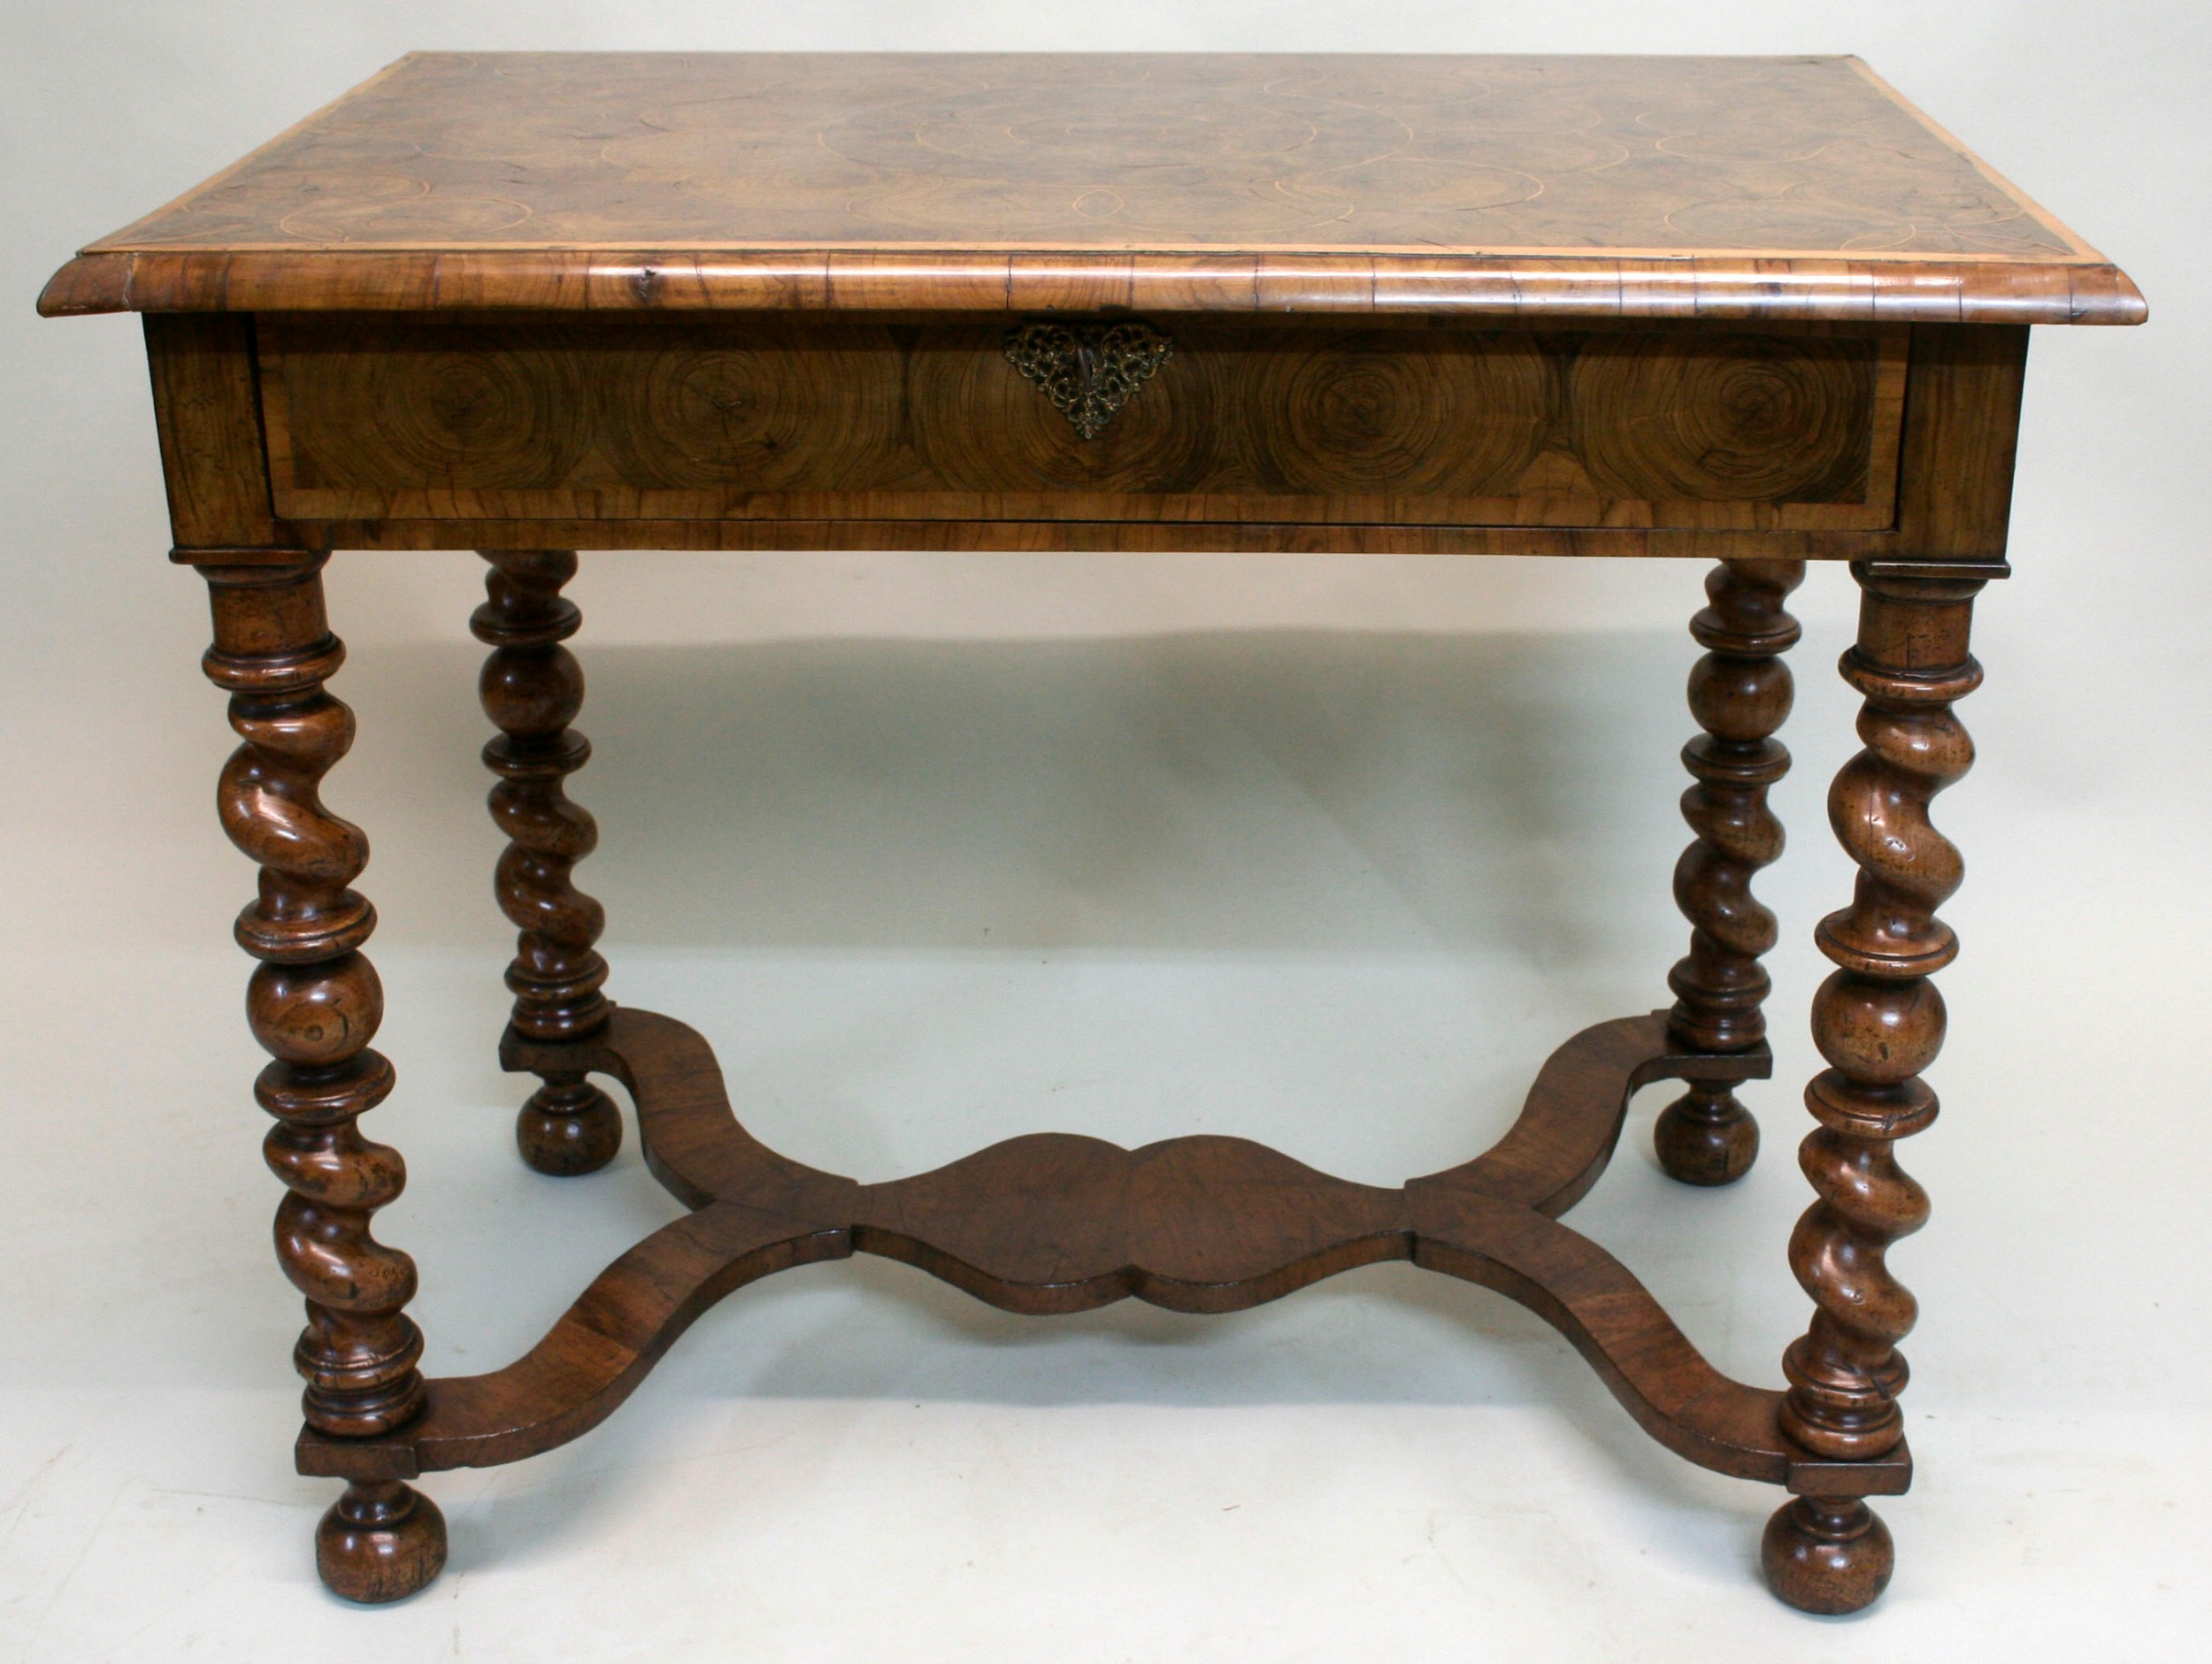 17th century olive oyster stretcher table